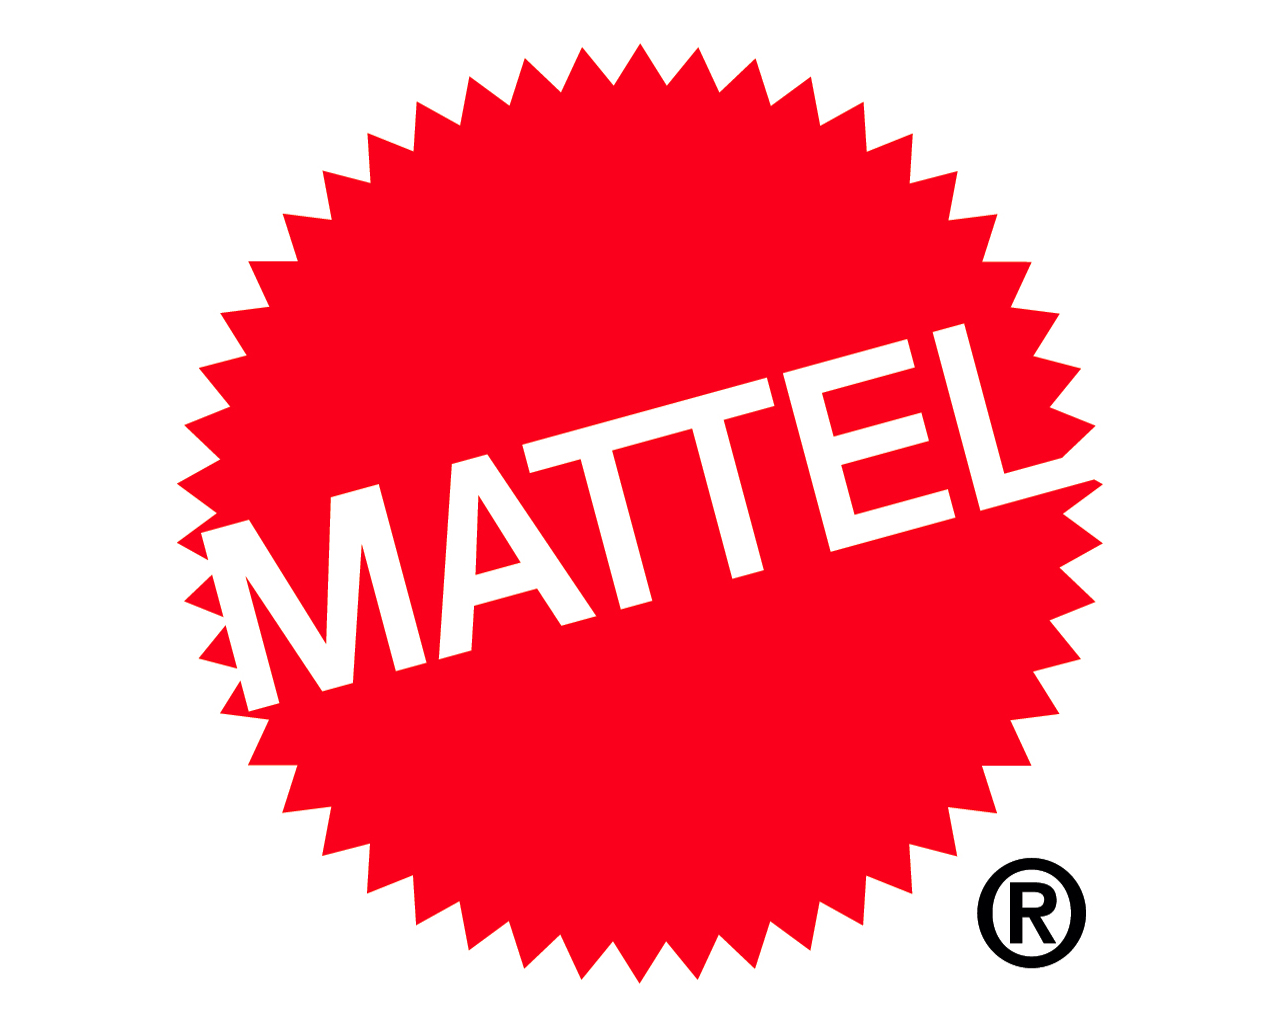 mattel-logo-toys-products-wallpapers-1280x1024